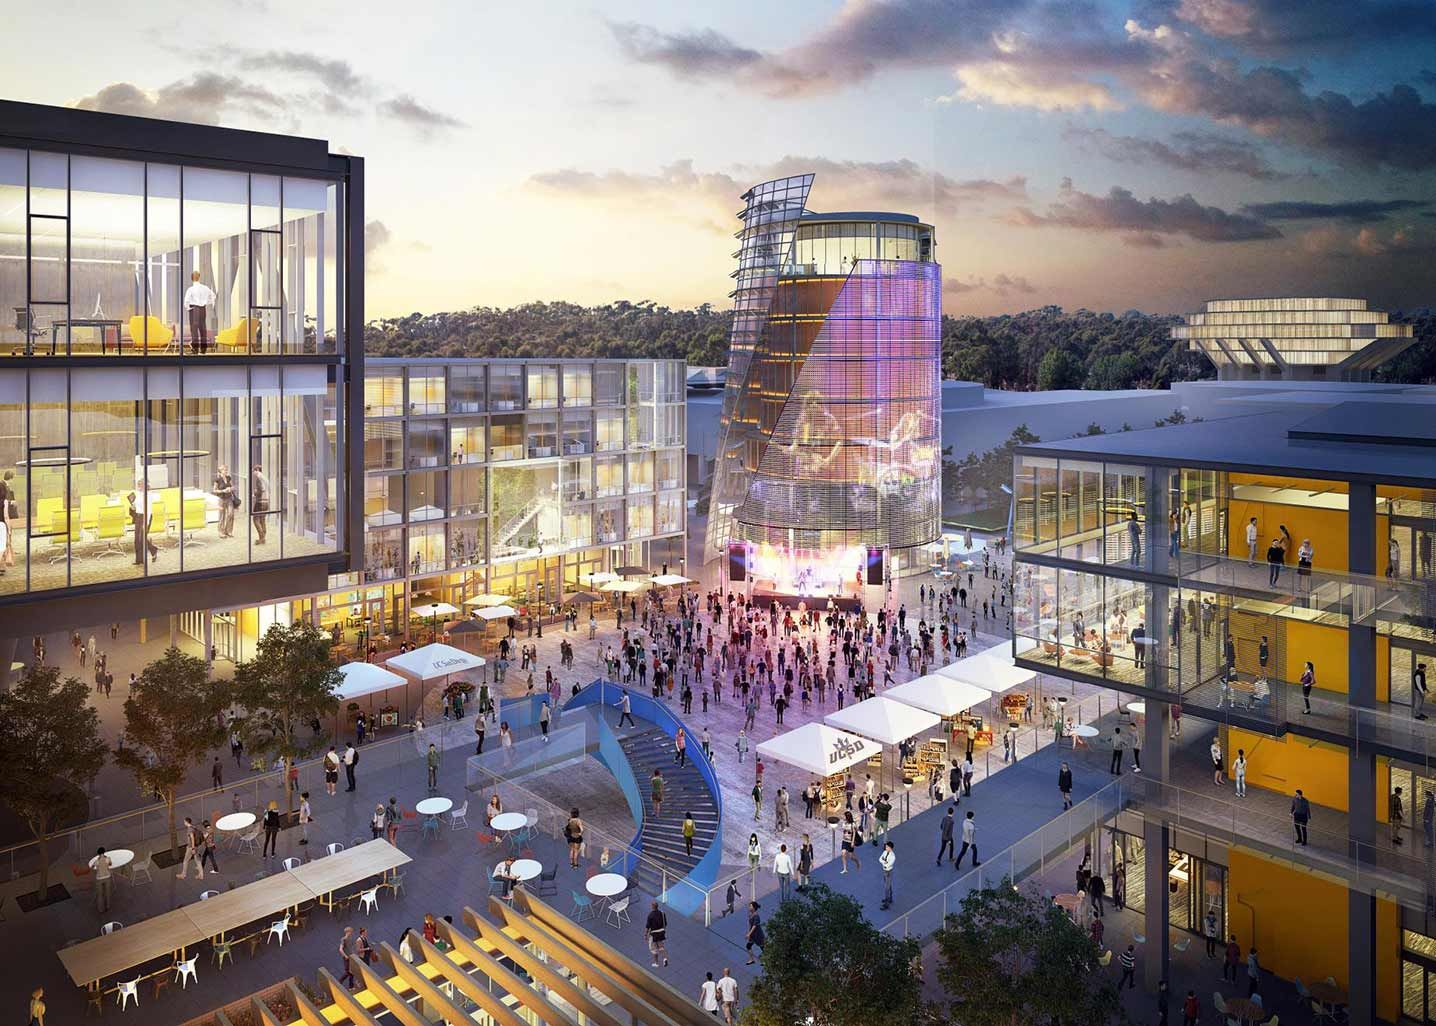 Uc San Diego Slated To Build A New Campus Front Door Archpaper Com University Of San Diego University Of California San Diego Campus